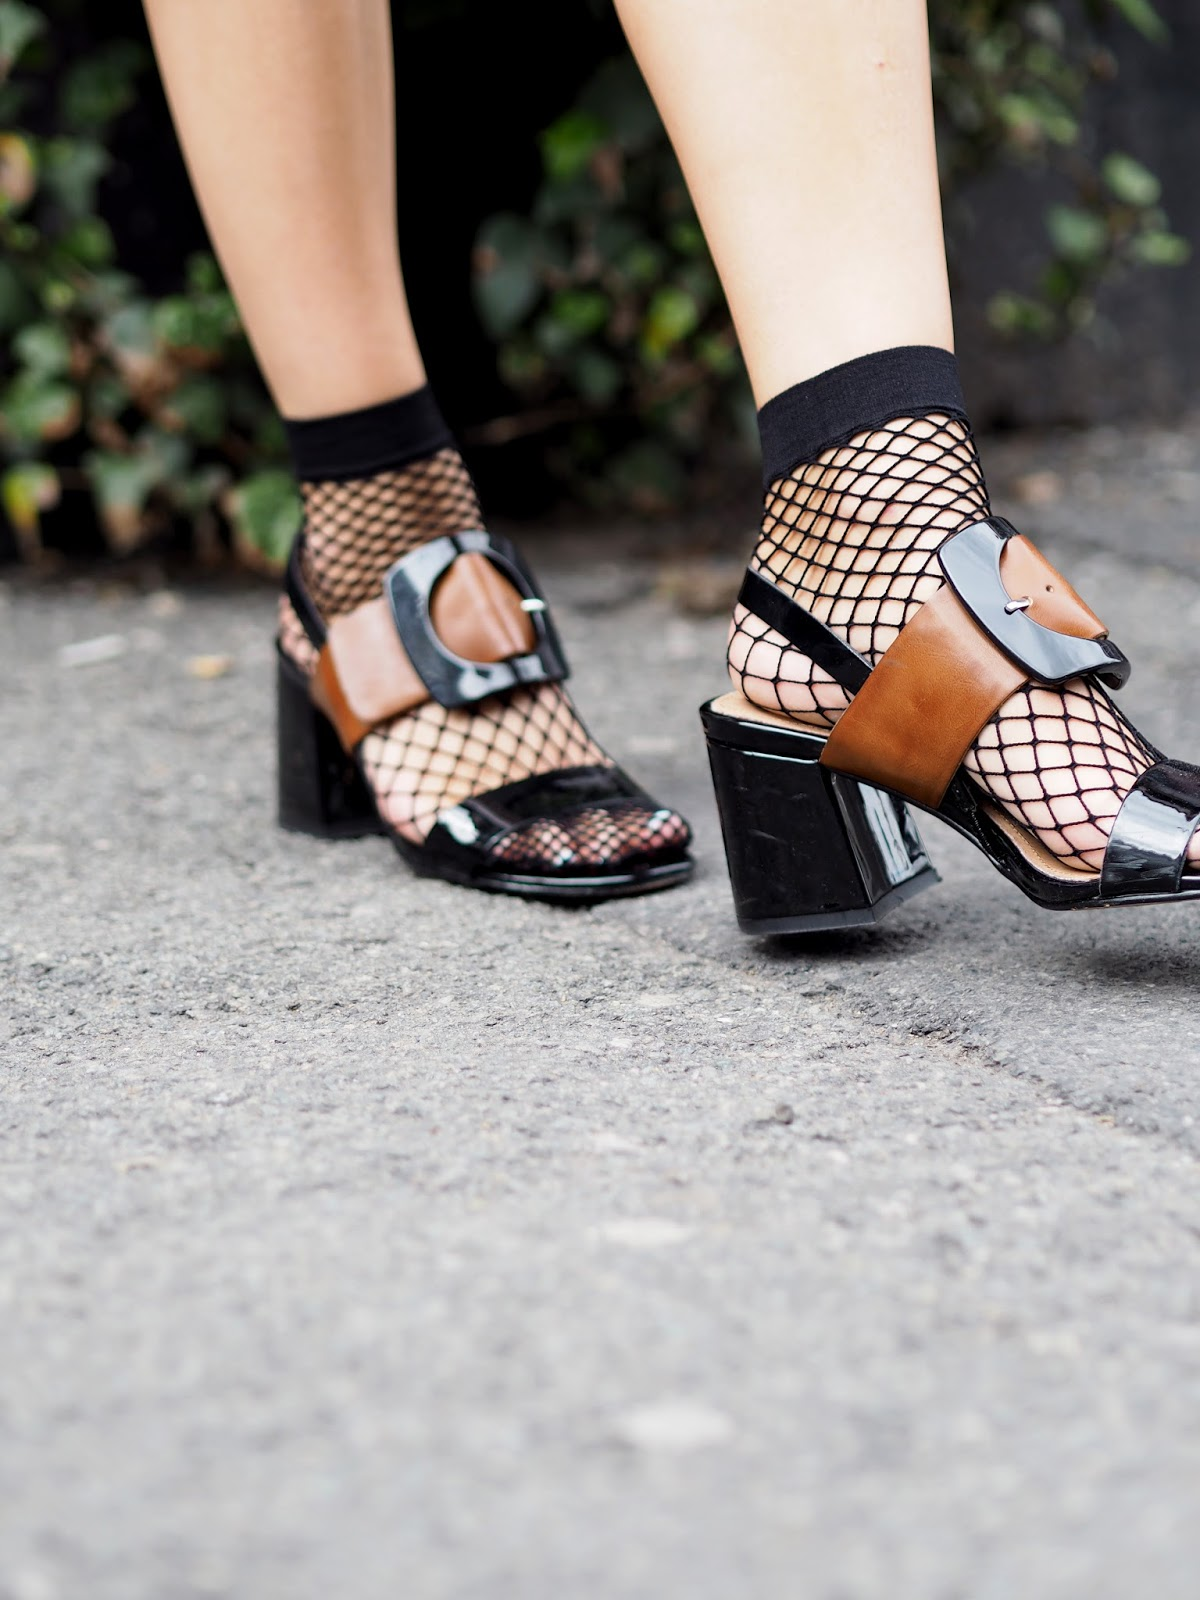 Next Buckle Sandals styled with Fish Net Socks